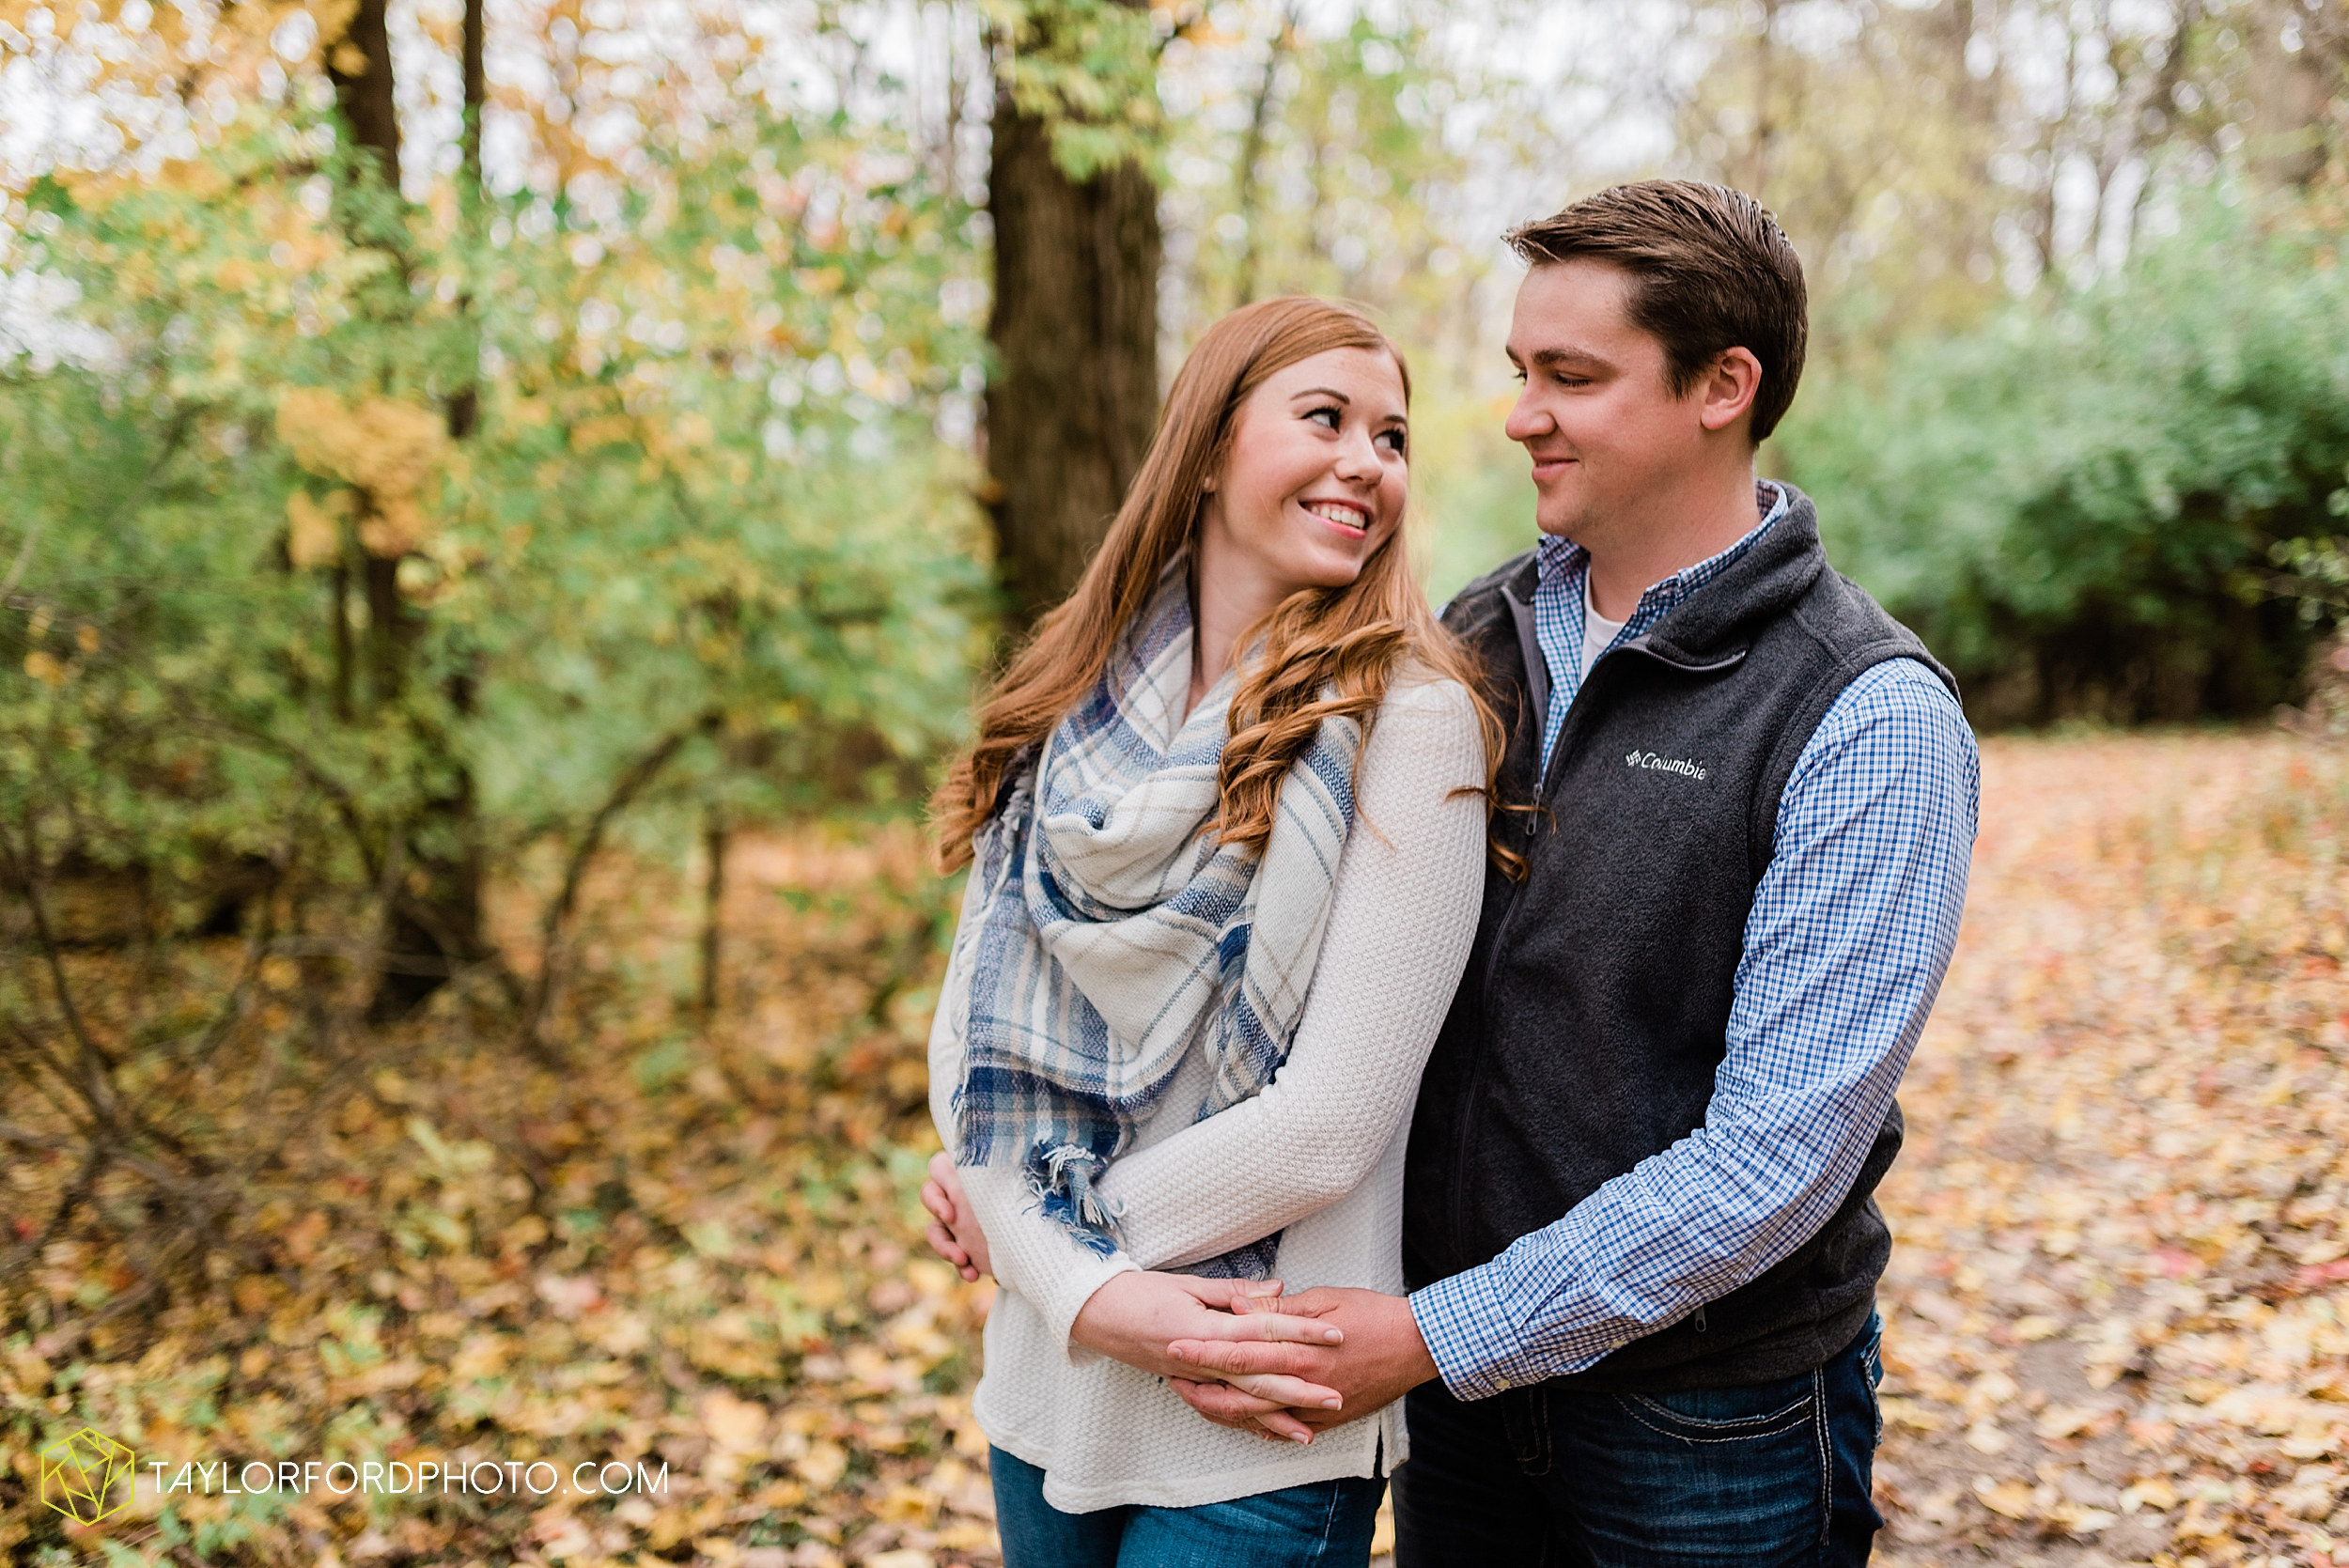 becca-connor-bonnell-fort-wayne-indiana-couples-mini-session-salomon-farm-fall-october-photographer-taylor-ford-photography_1629.jpg